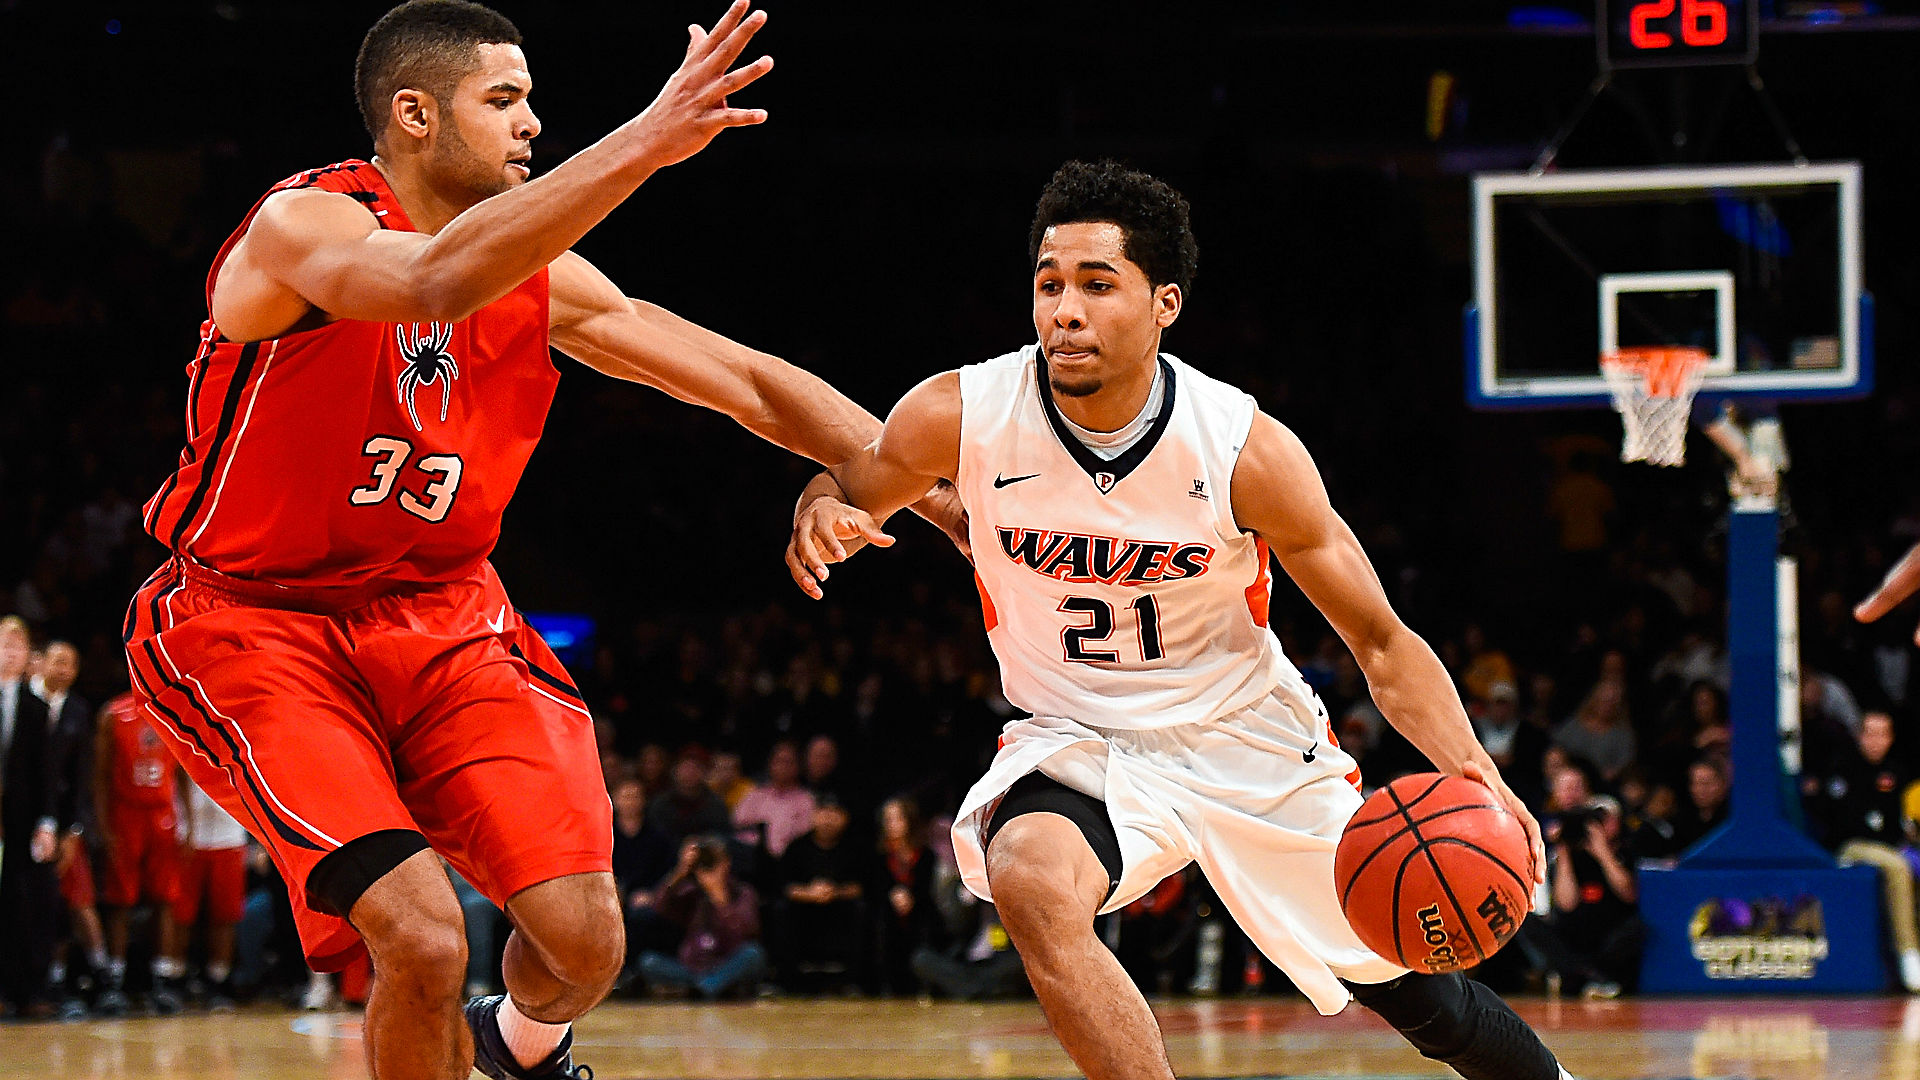 College basketball betting lines and picks – Profitable WCC teams match up